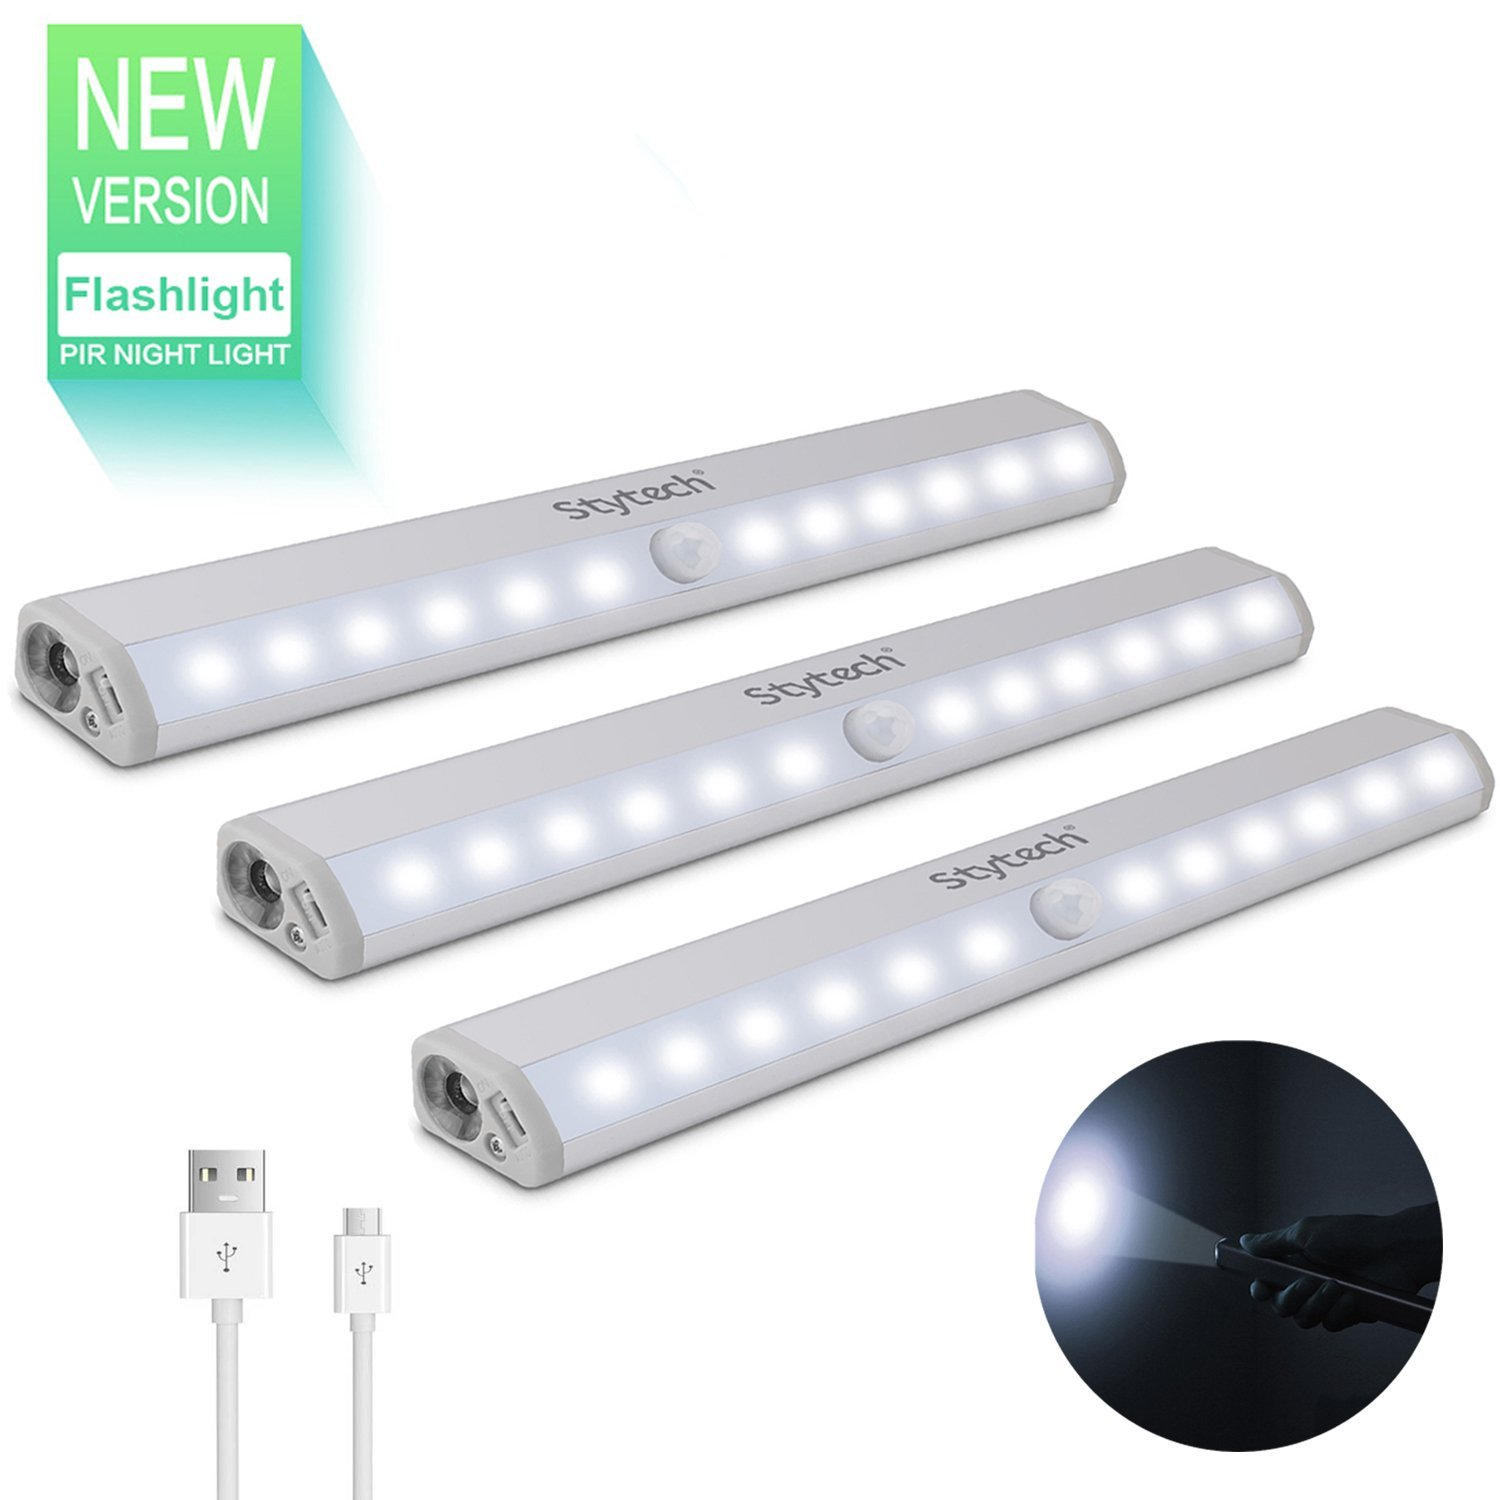 Motion Sensor Closet Light with Flashlight, 12 LED Wireless Night Light, Small Under Cabinet Lighting, Stick-on Anywhere, Modern USB Rechargeable Portable Closet Light